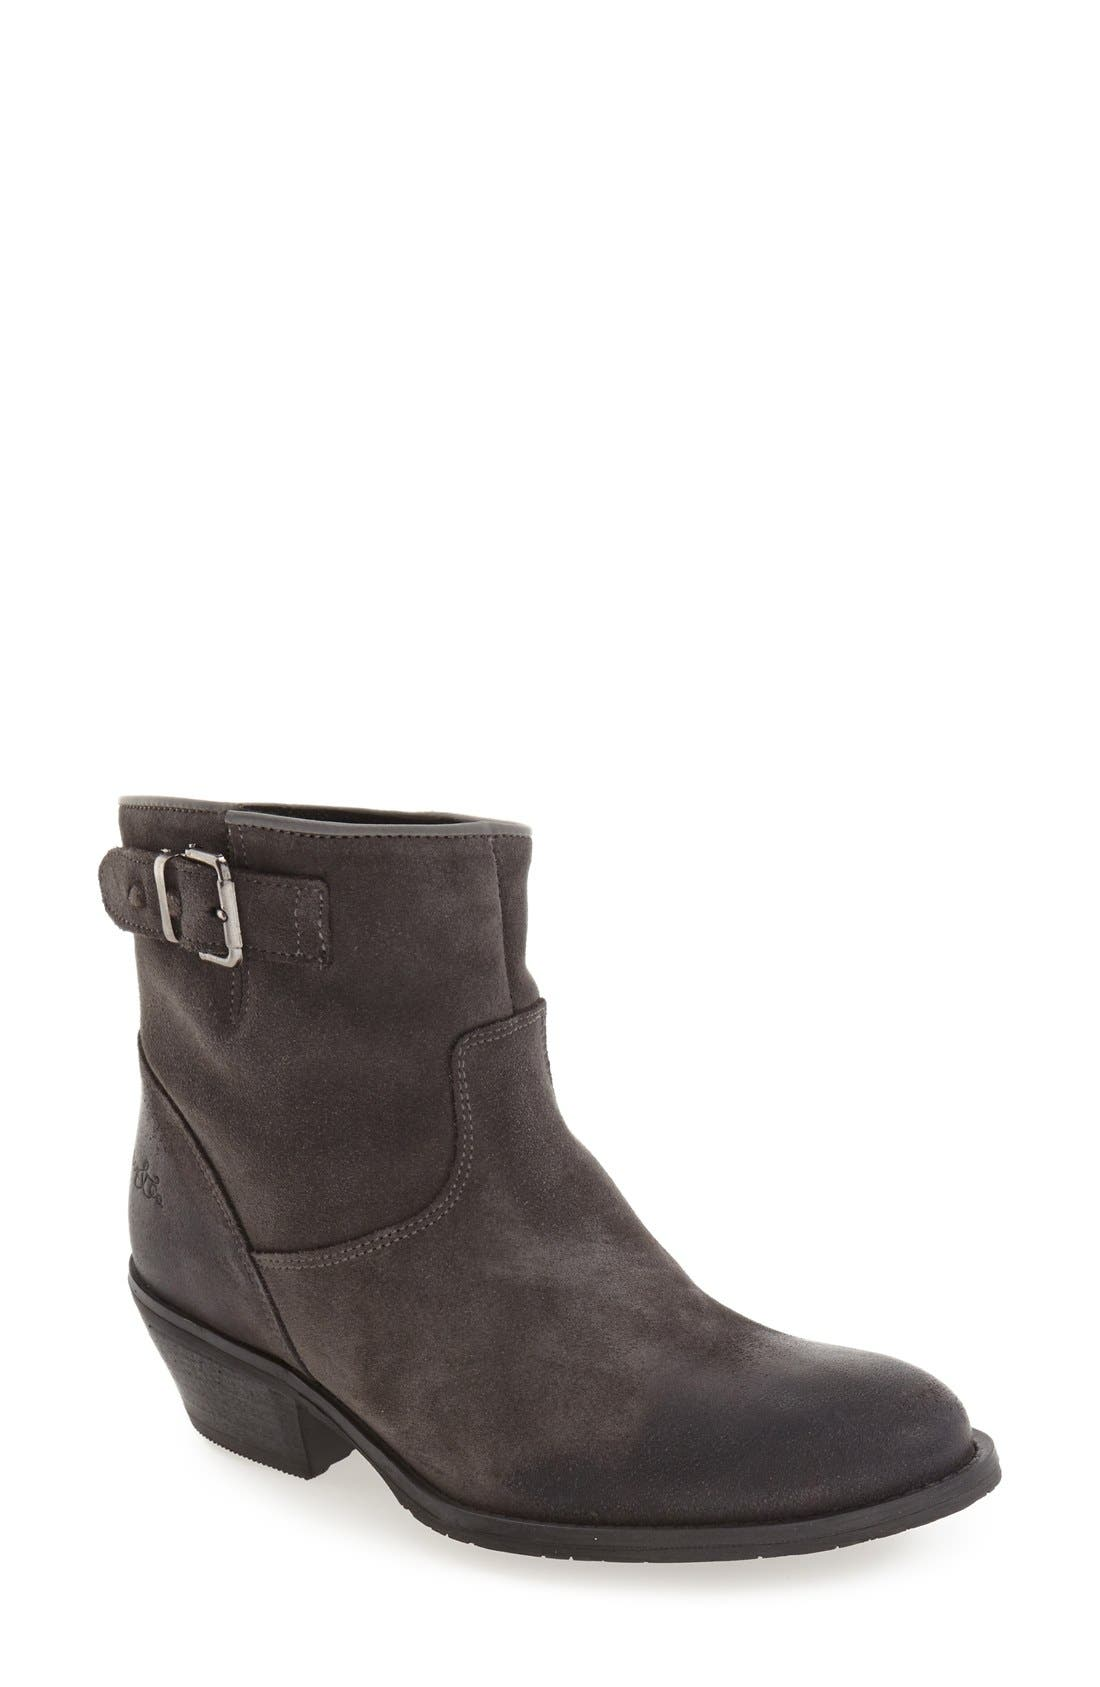 'Ramona' Waterproof Bootie,                         Main,                         color, Grey Oil Suede